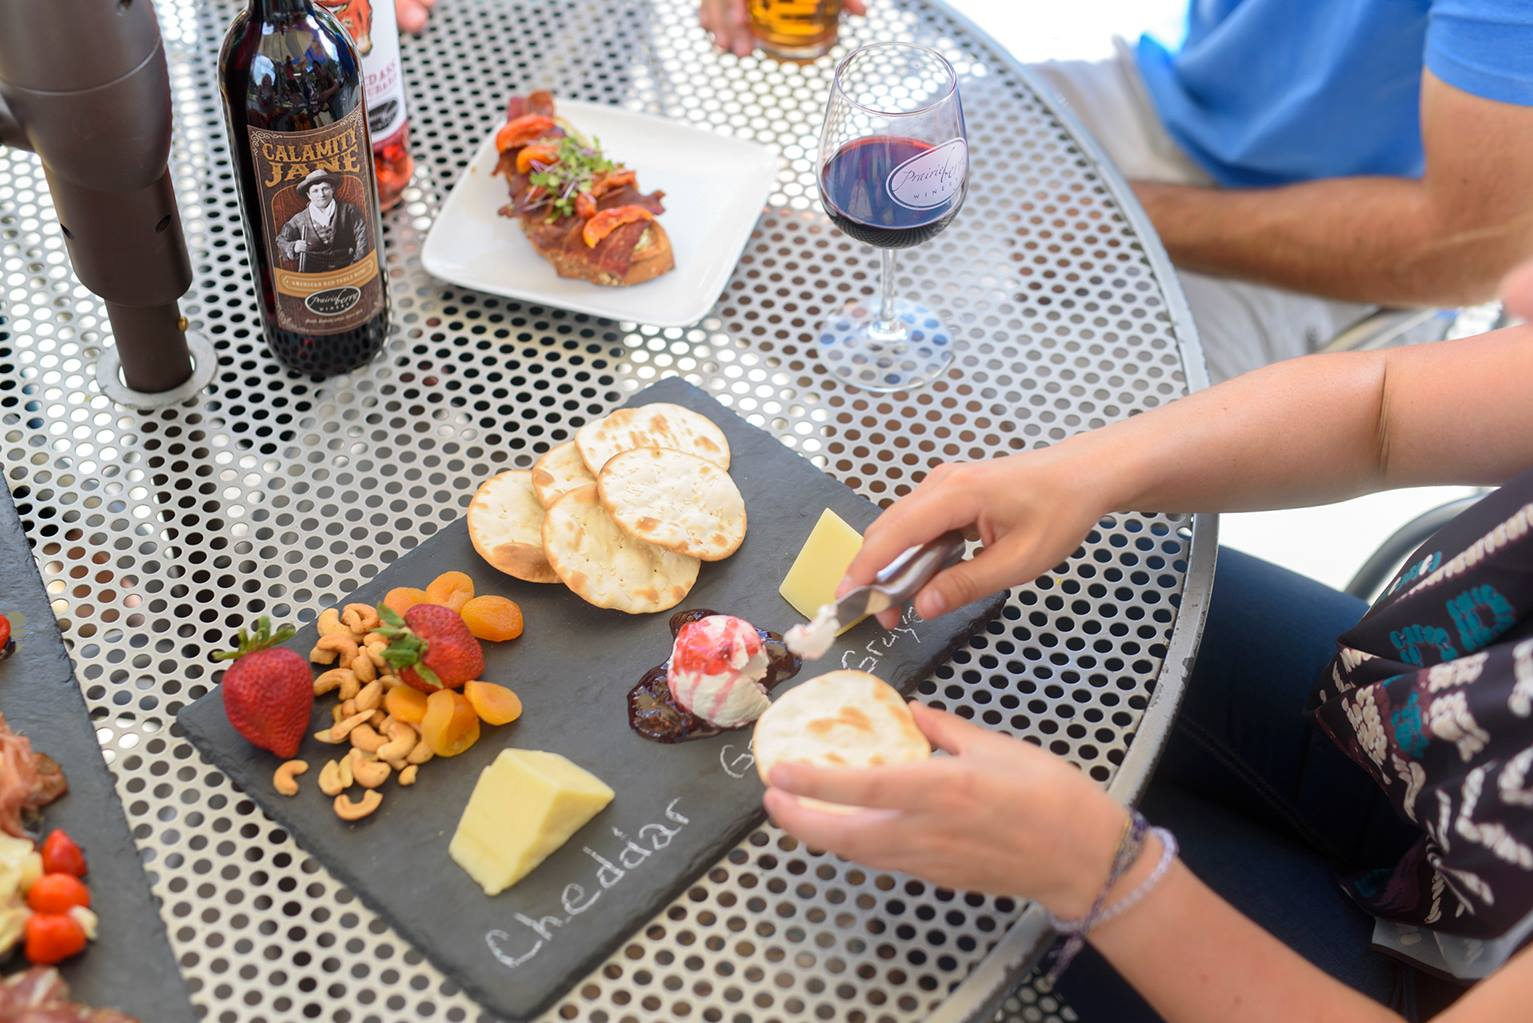 Enjoy a cheese board on one of our two patios overlooking Black Elk Peak